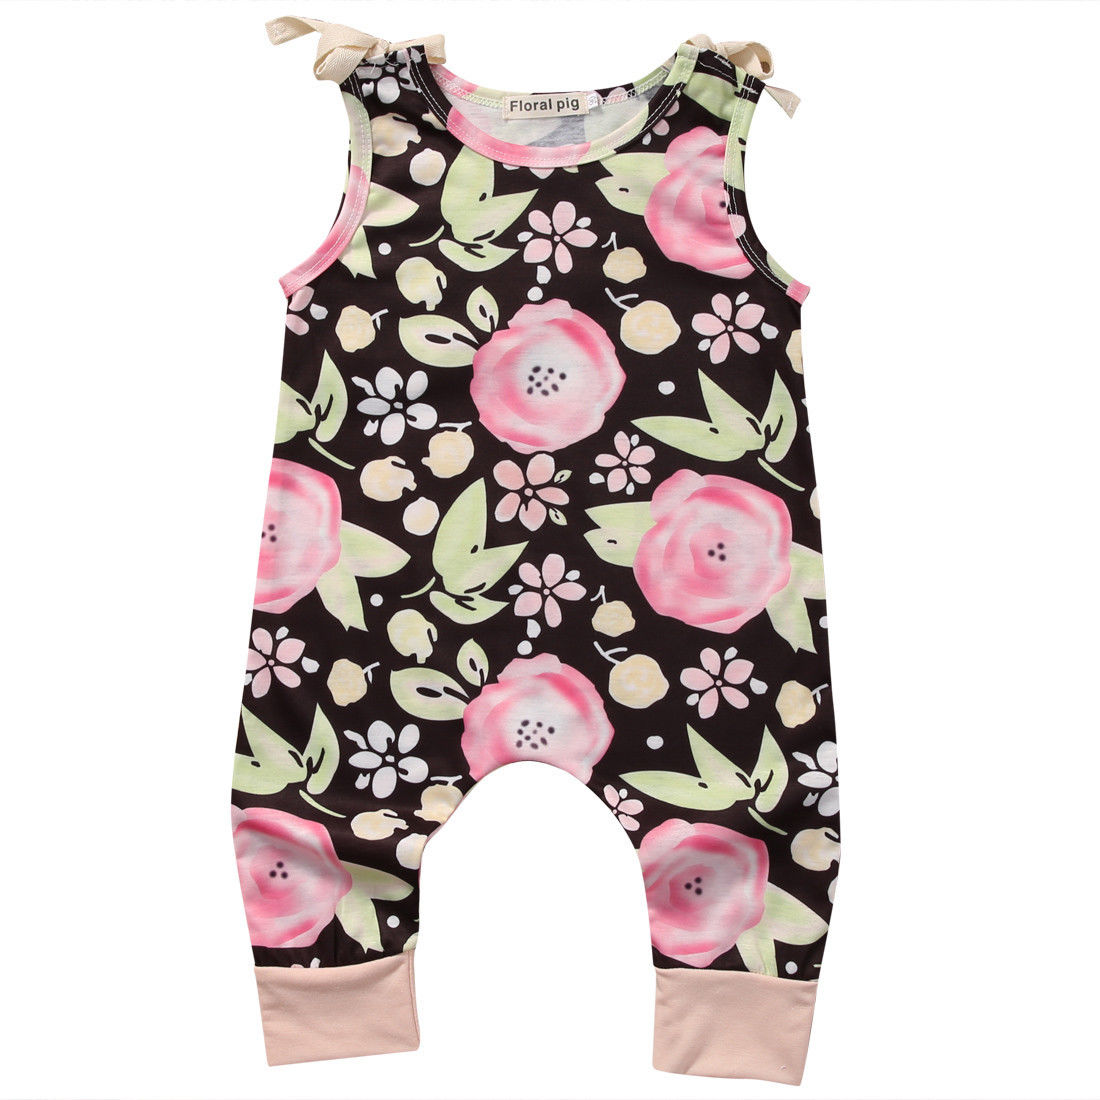 Cotton One-piece Kids Baby Girl Floral Sleeveless Floral Romper Jumpsuit Clothes Outfit Sunsuit Summer Baby Clothes Girls Romper newborn infant baby girl clothes strap lace floral romper jumpsuit outfit summer cotton backless one pieces outfit baby onesie